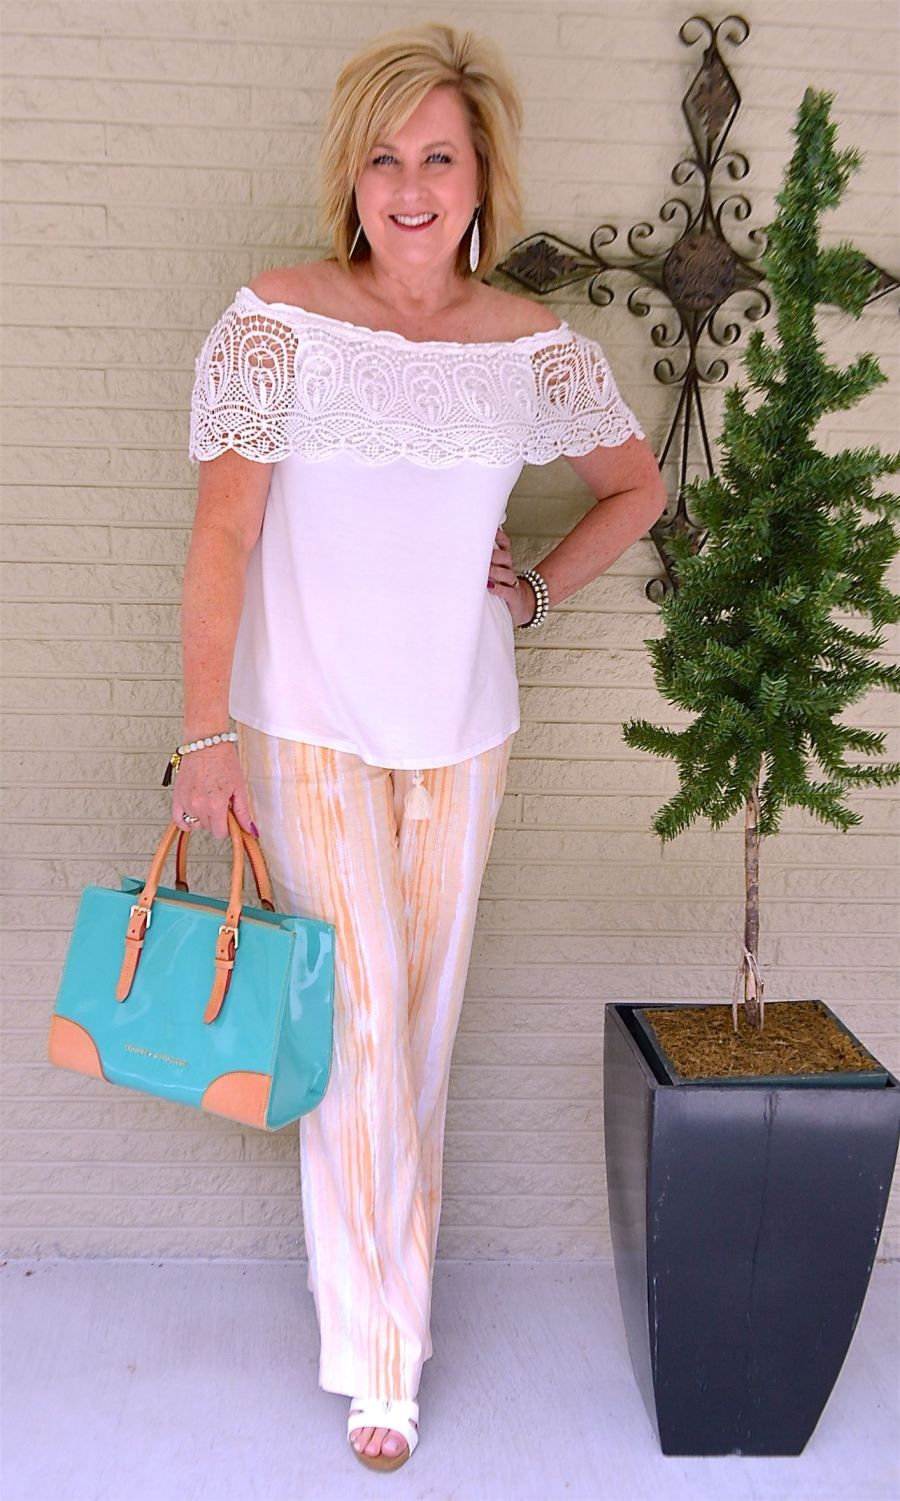 LINEN AND LACE - 50 IS NOT OLD | Off The Shoulder | Feminine | Turquoise | Summer | Fashion over 40 for the everyday woman